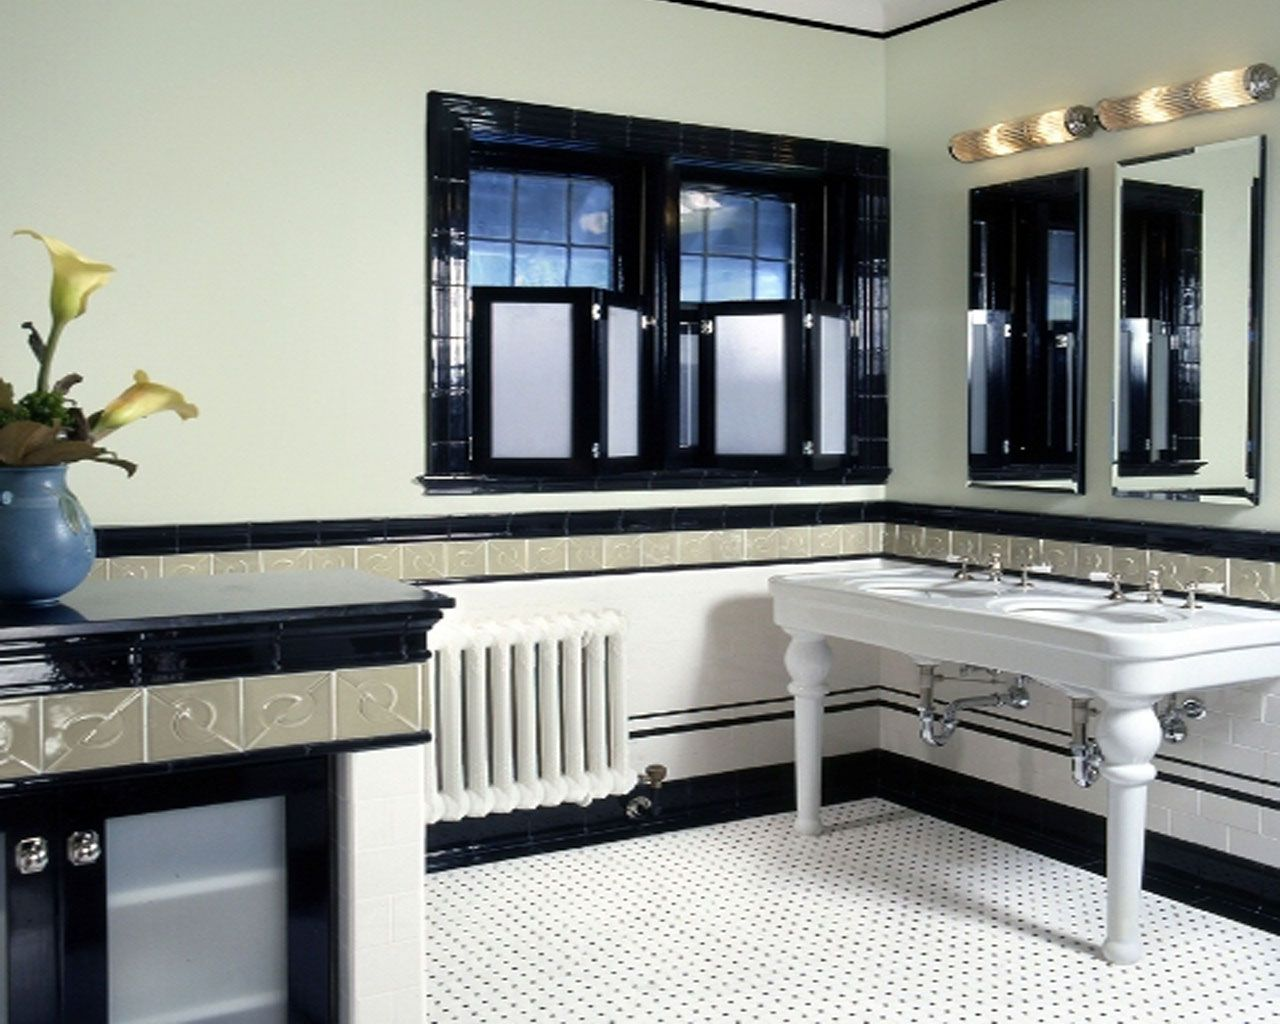 Black and white art deco bathroom - Bathroom Black White Art Deco Bathroom Interior Designs To Inspire Your Relaxing Sanctuary 22